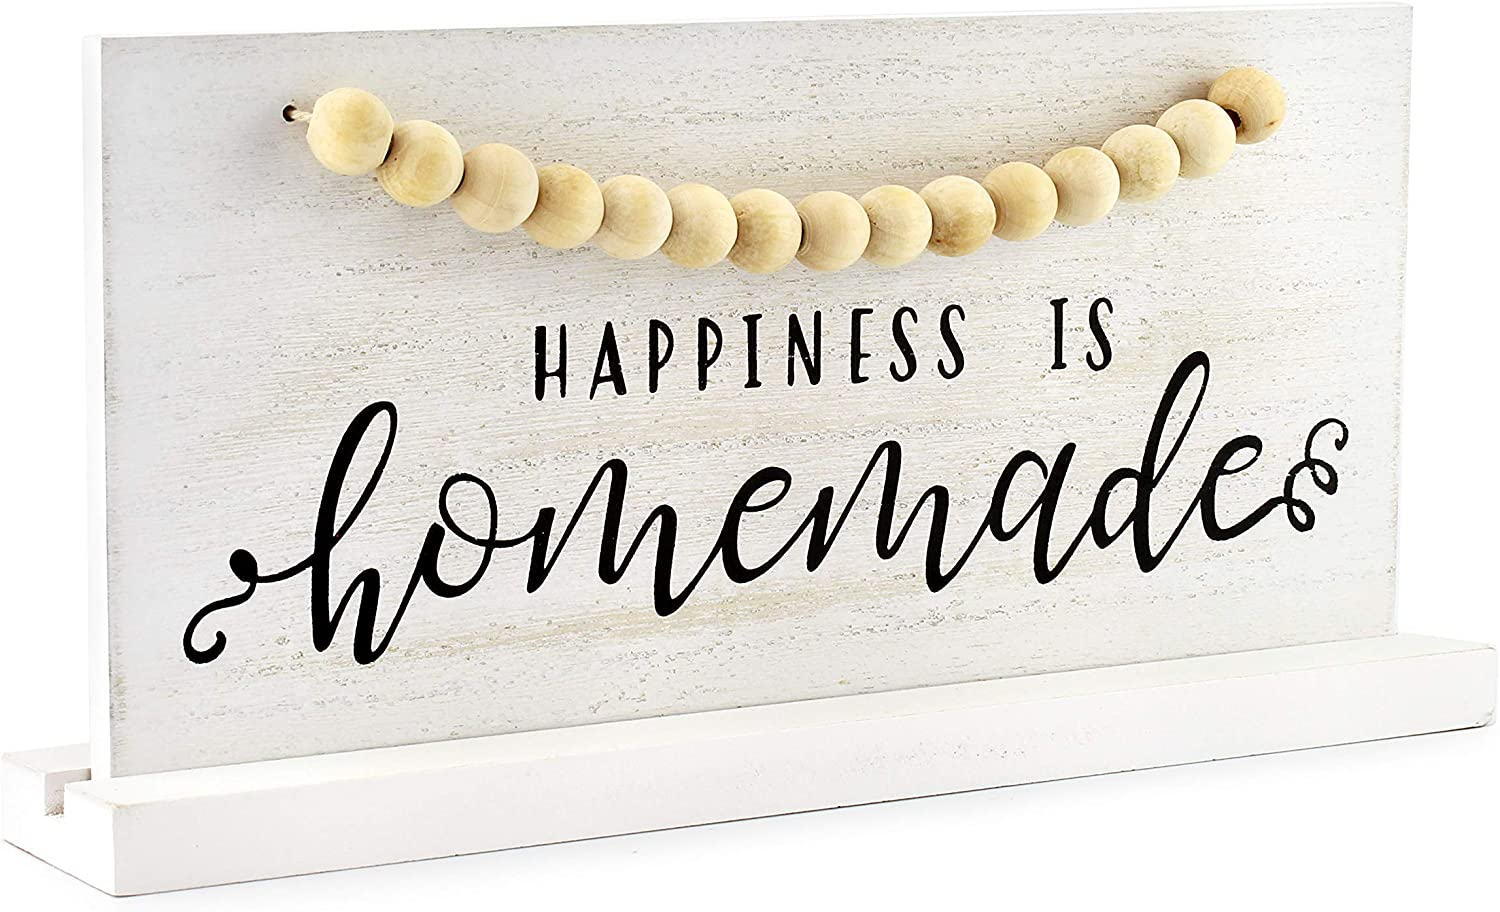 AuldHome Wood Beaded Sign, Happiness is Homemade, Table/Shelf Freestanding Rustic Farmhouse Sign, Distressed Whitewashed Style, 11.8 x 5.6 Inches